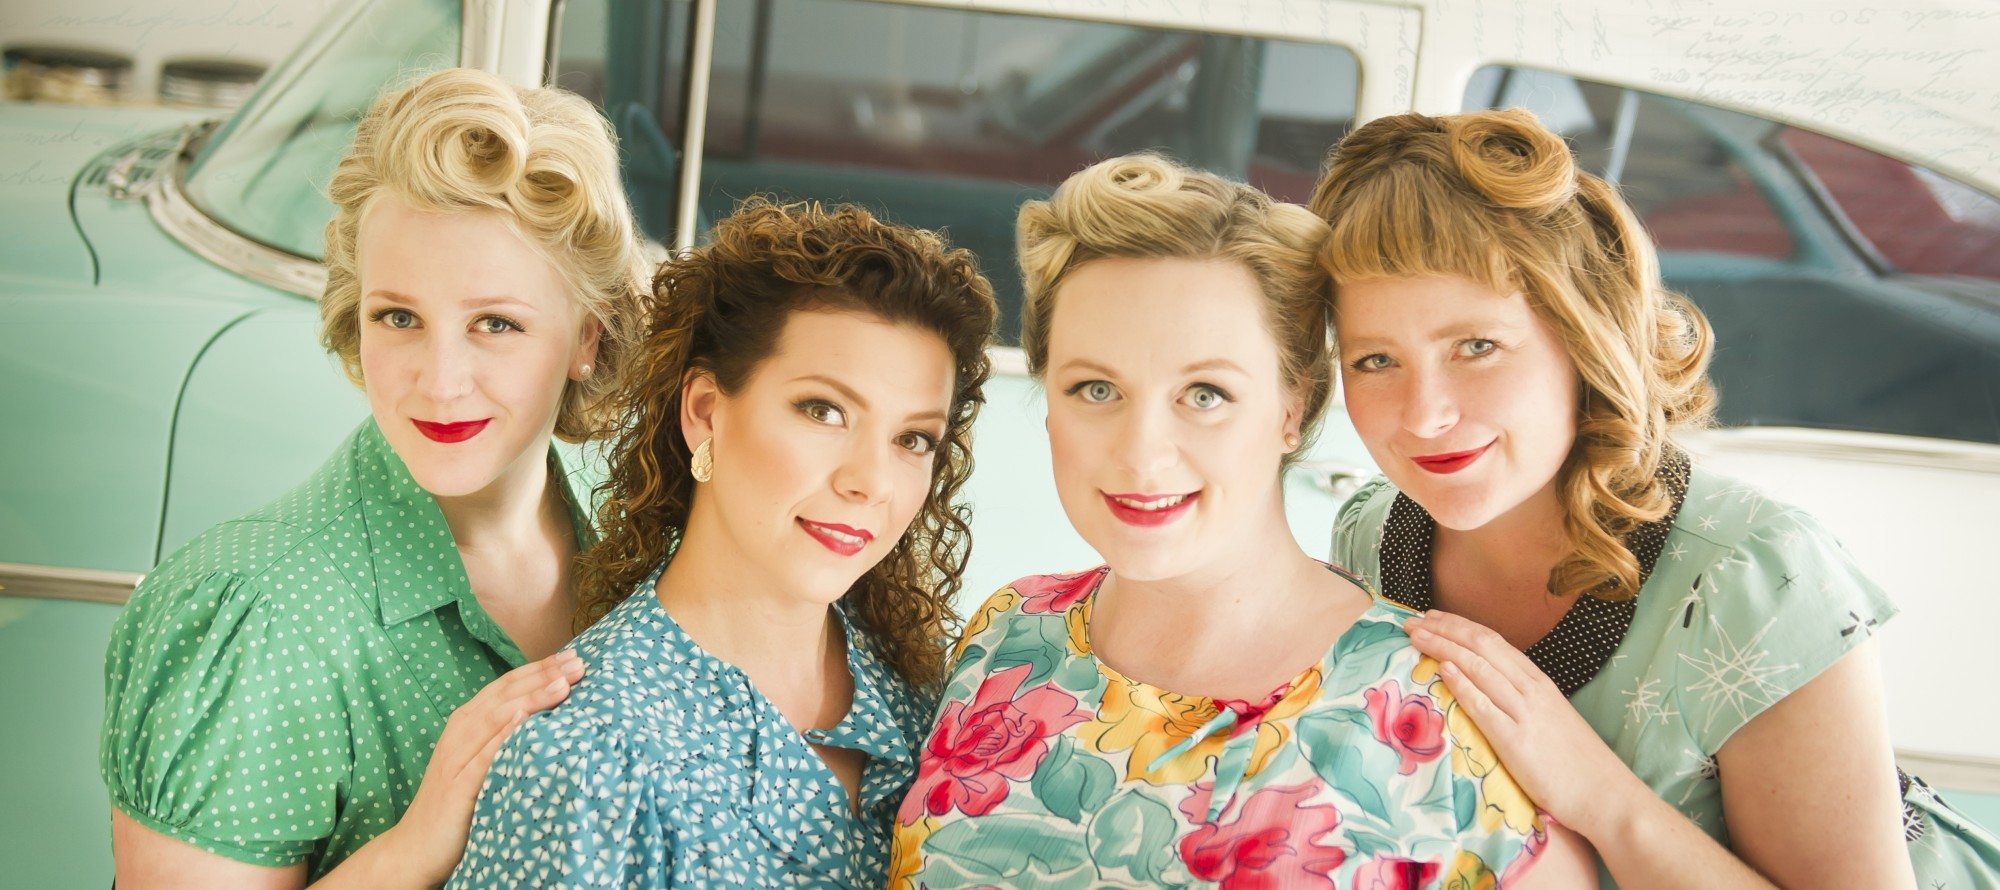 National gaffe to national darling — Alexis Normand returns with Rosie & The Riveters